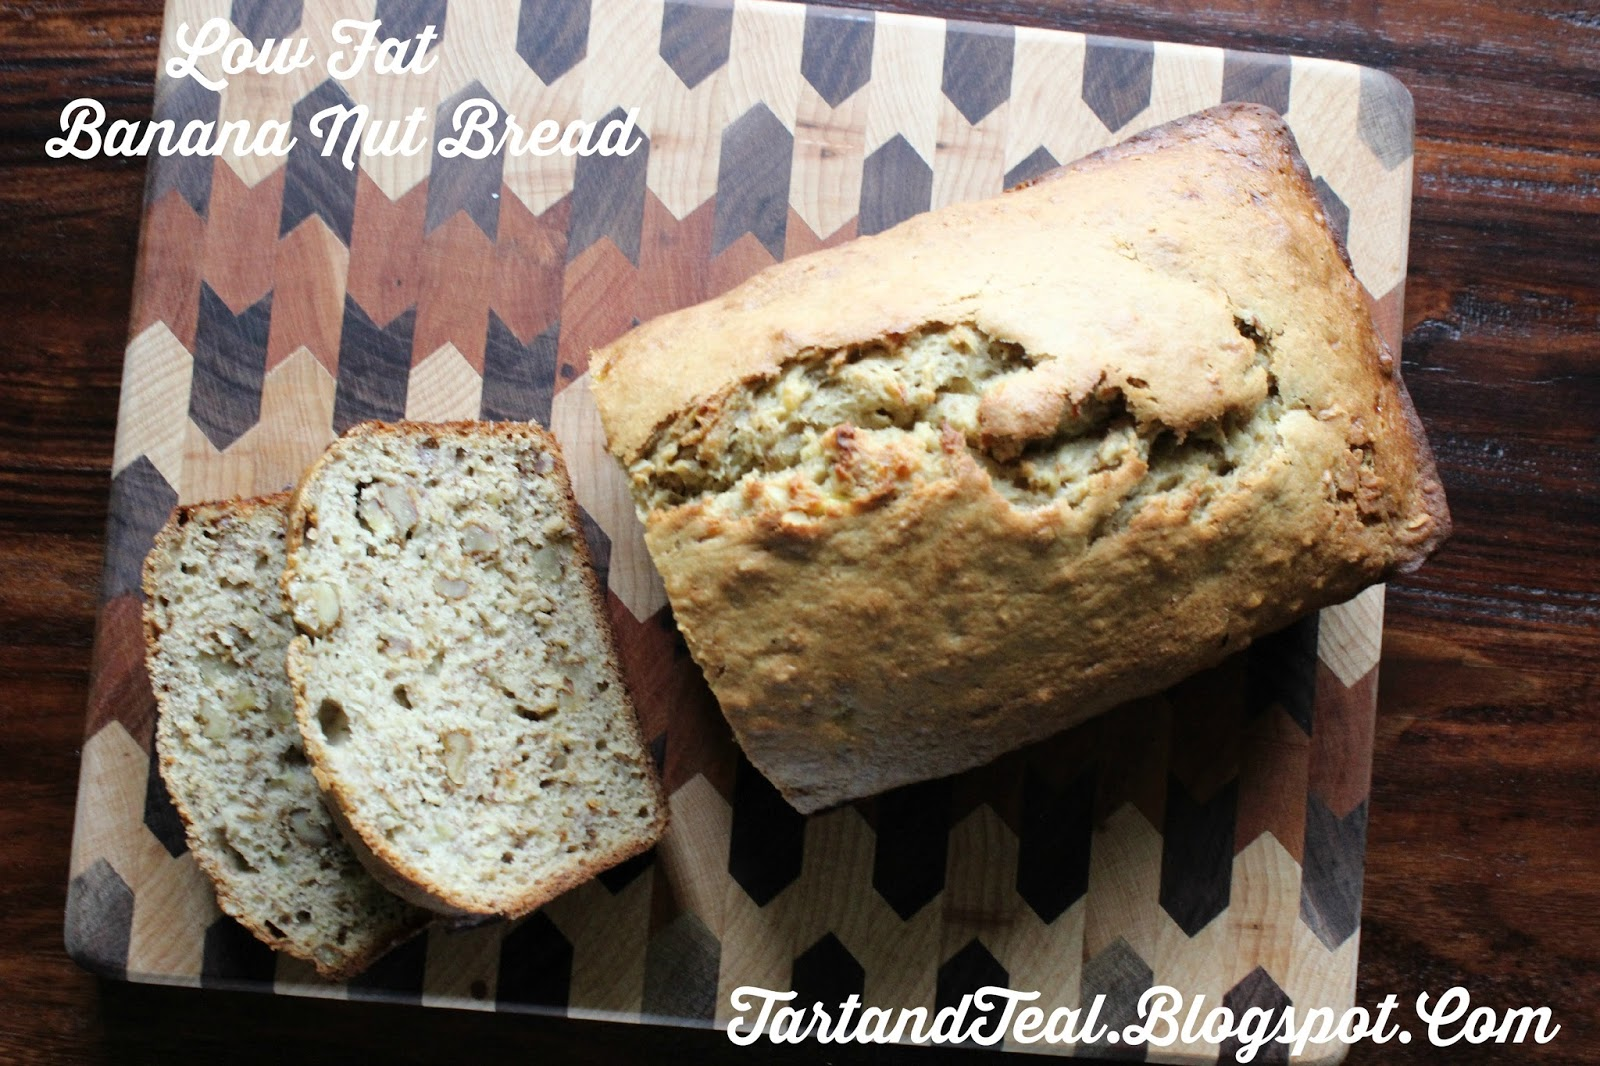 Tart and Teal: Low Fat Banana Nut Bread